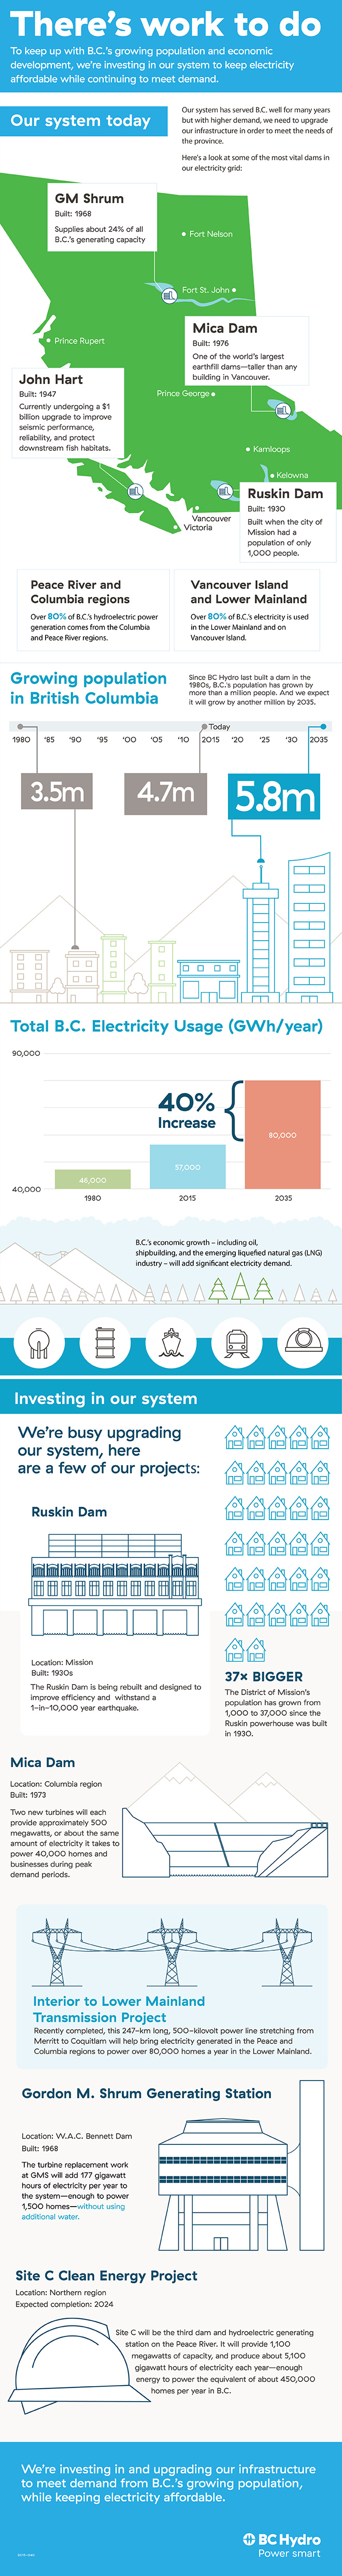 Infographic about where we're investing to meet future energy demand